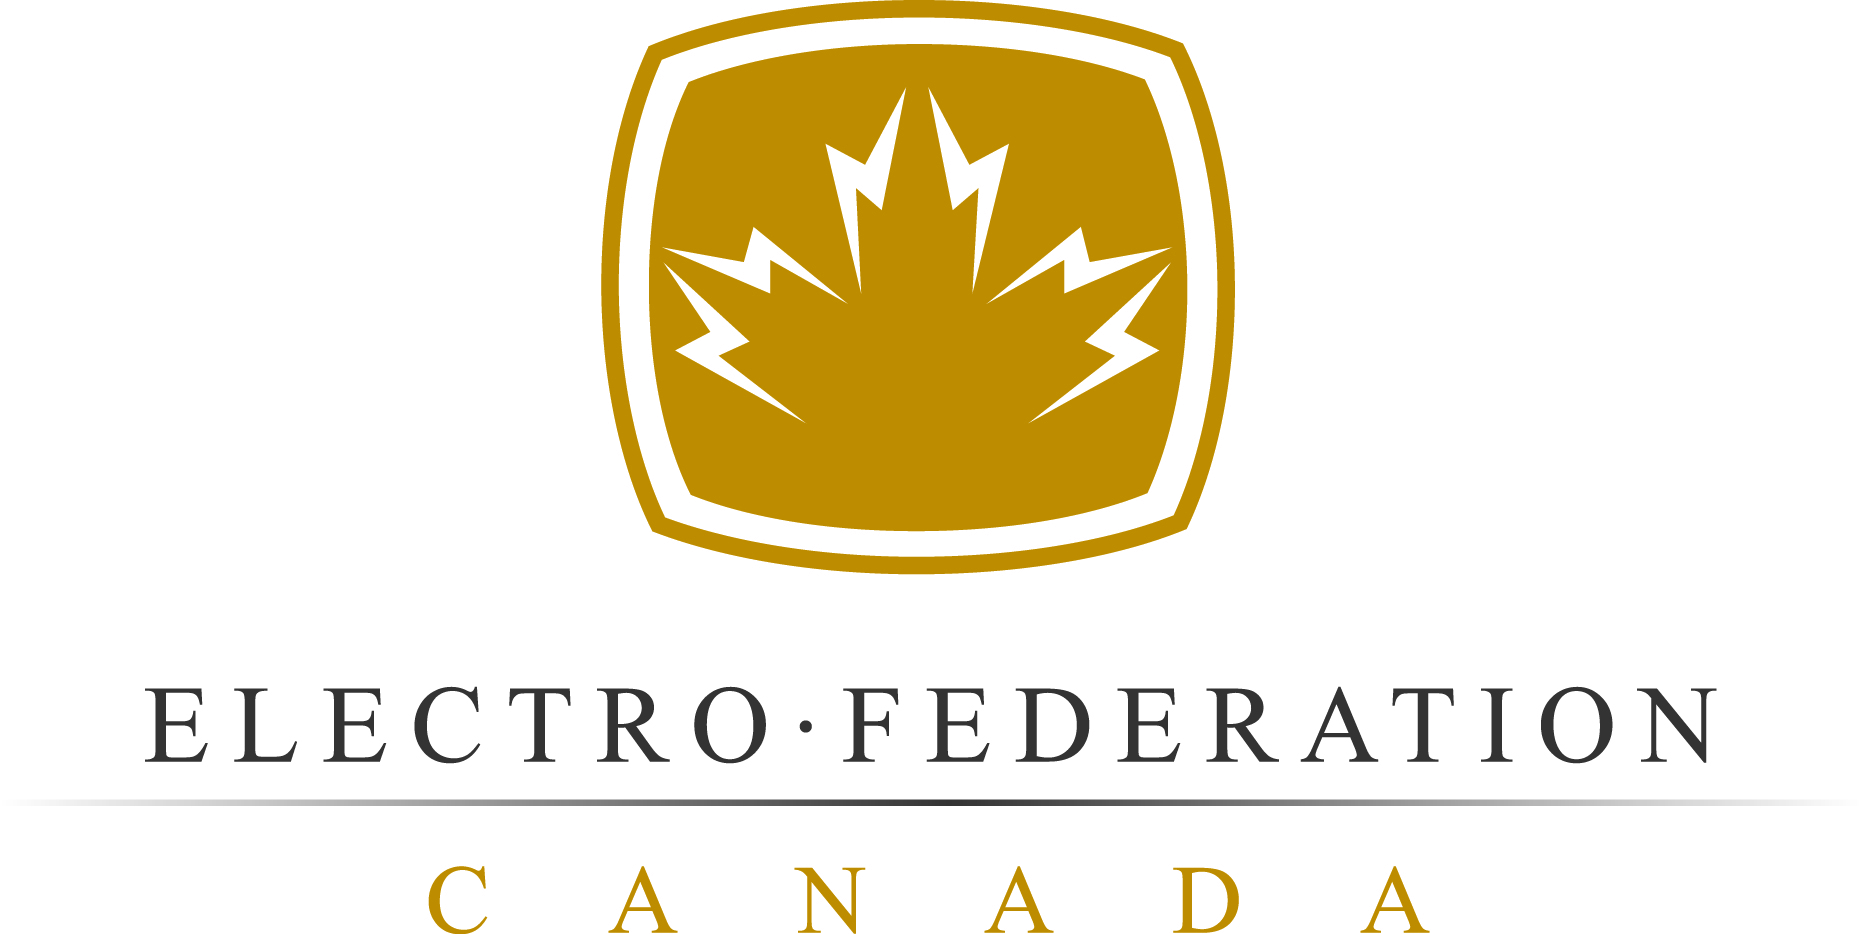 Electro Federation Canada standards